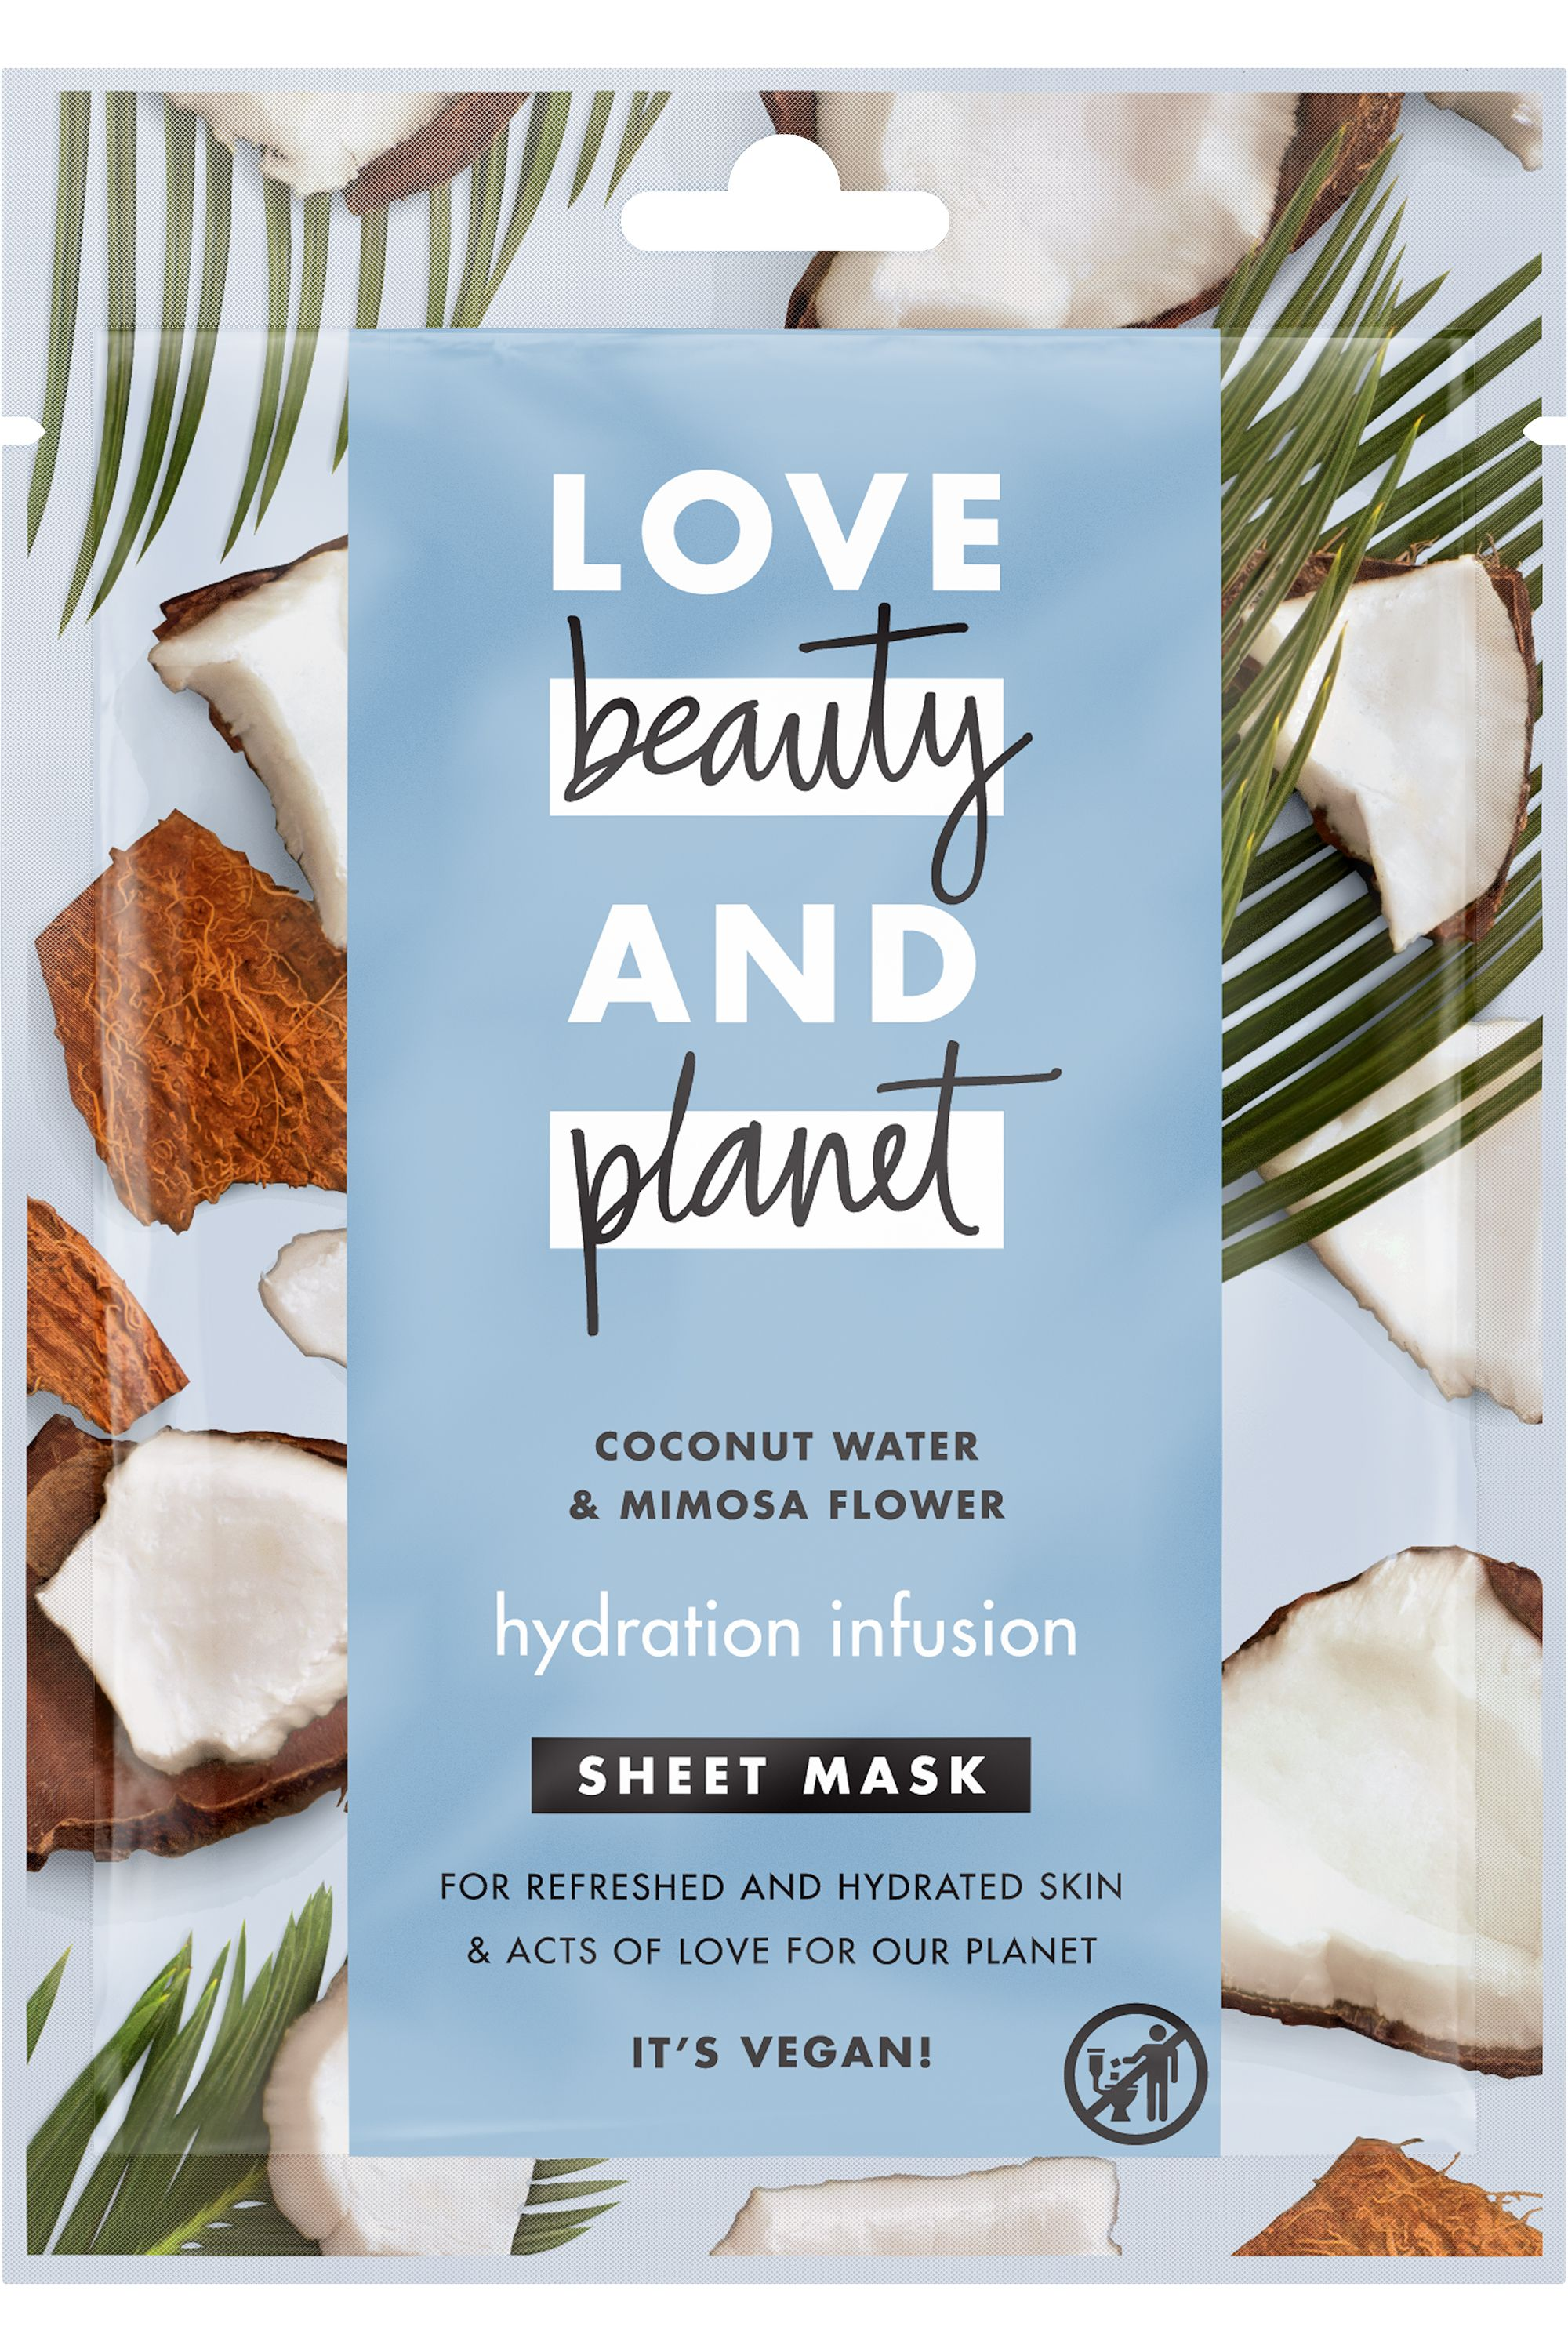 Blissim : Love Beauty and Planet - Masque visage en tissu infusion hydratante - Masque visage en tissu infusion hydratante